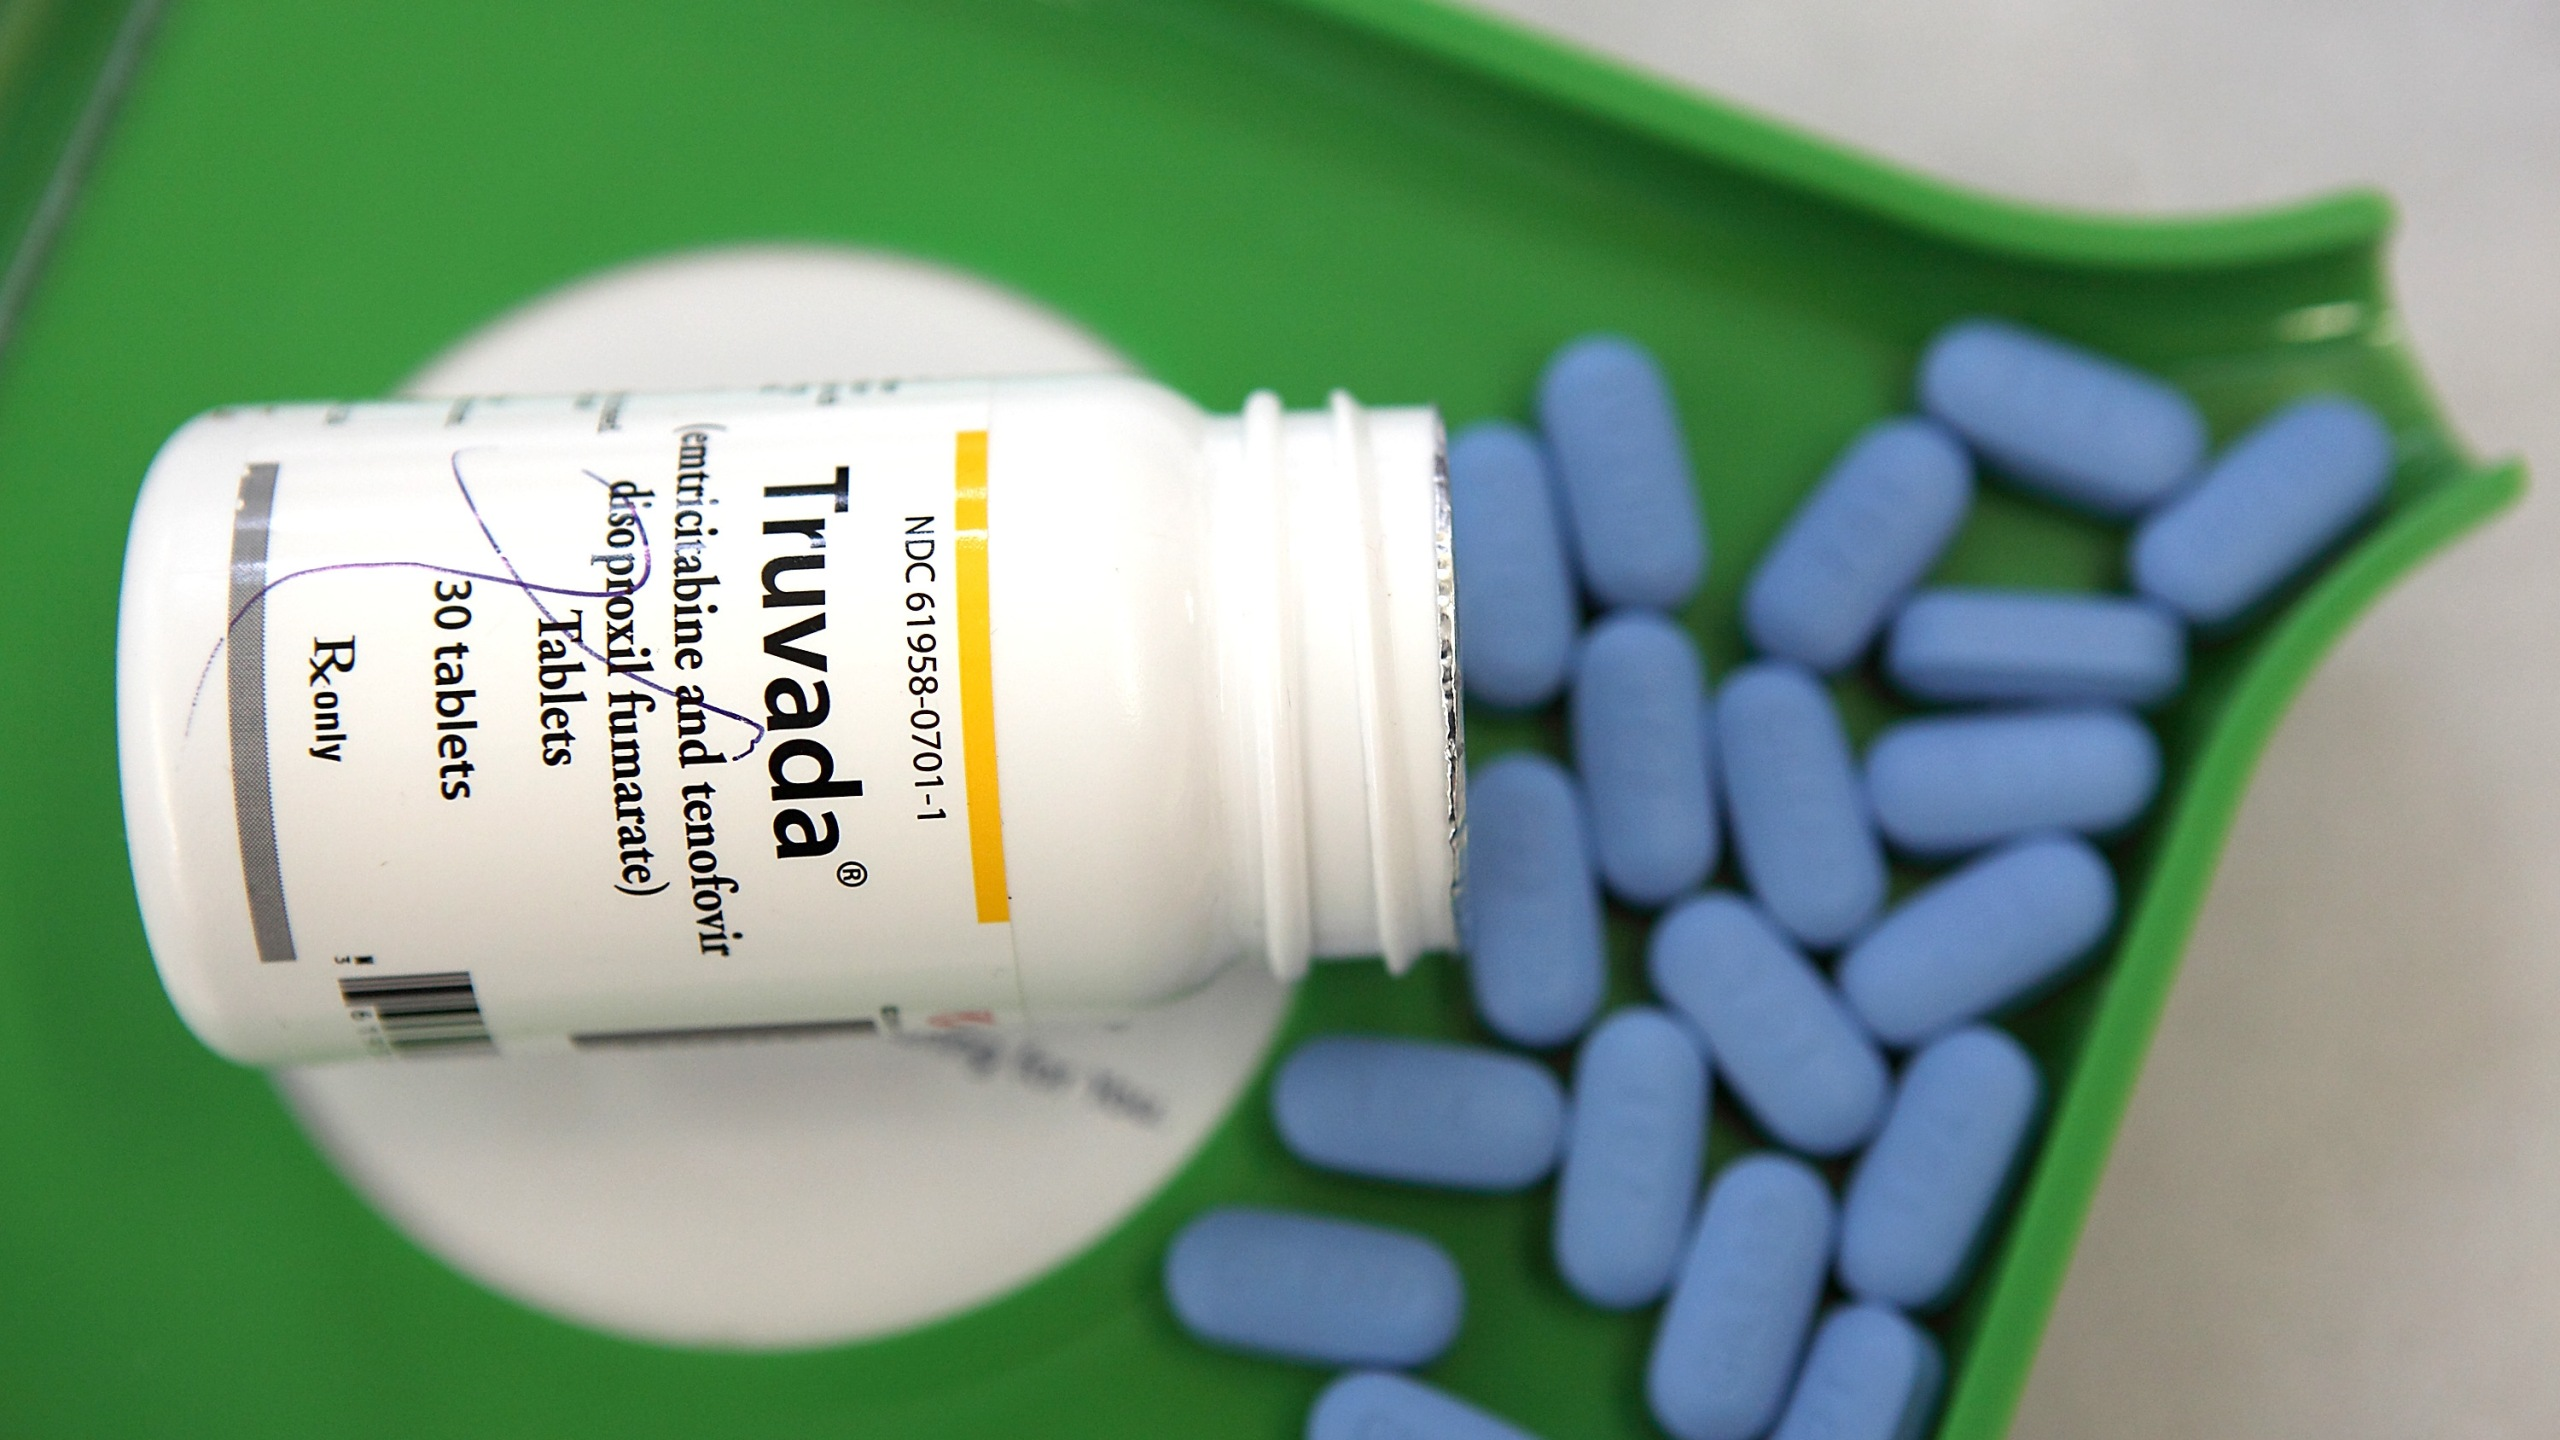 A bottle of antiretroviral drug Truvada is displayed at Jack's Pharmacy in San Anselmo, California on Nov. 23, 2010. (Credit: Justin Sullivan/Getty Images